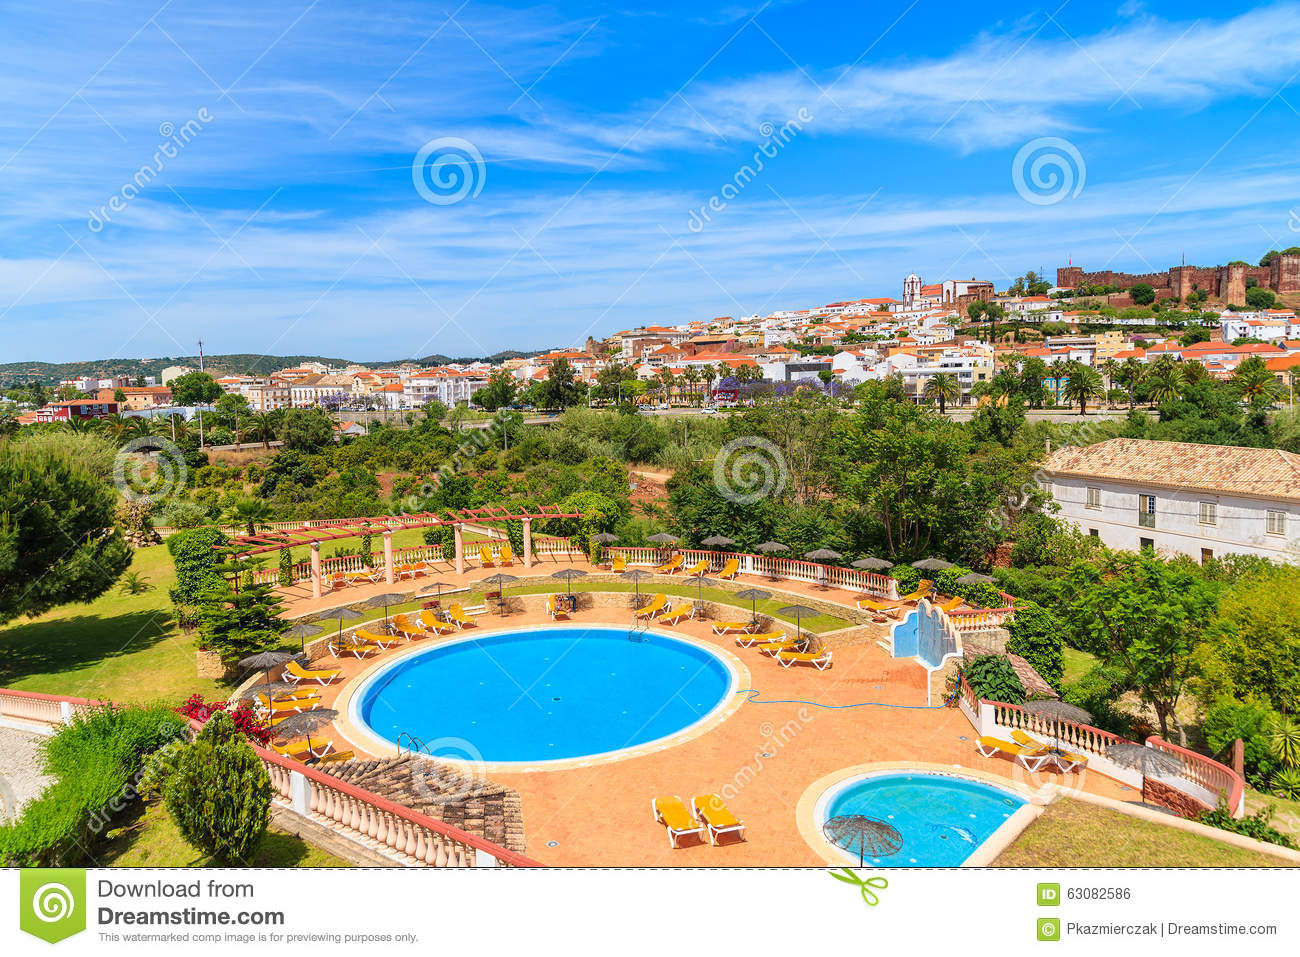 Download Vue De Ville De Silves Et De Piscine Photo stock - Image du pelouse, jardin: 63082586